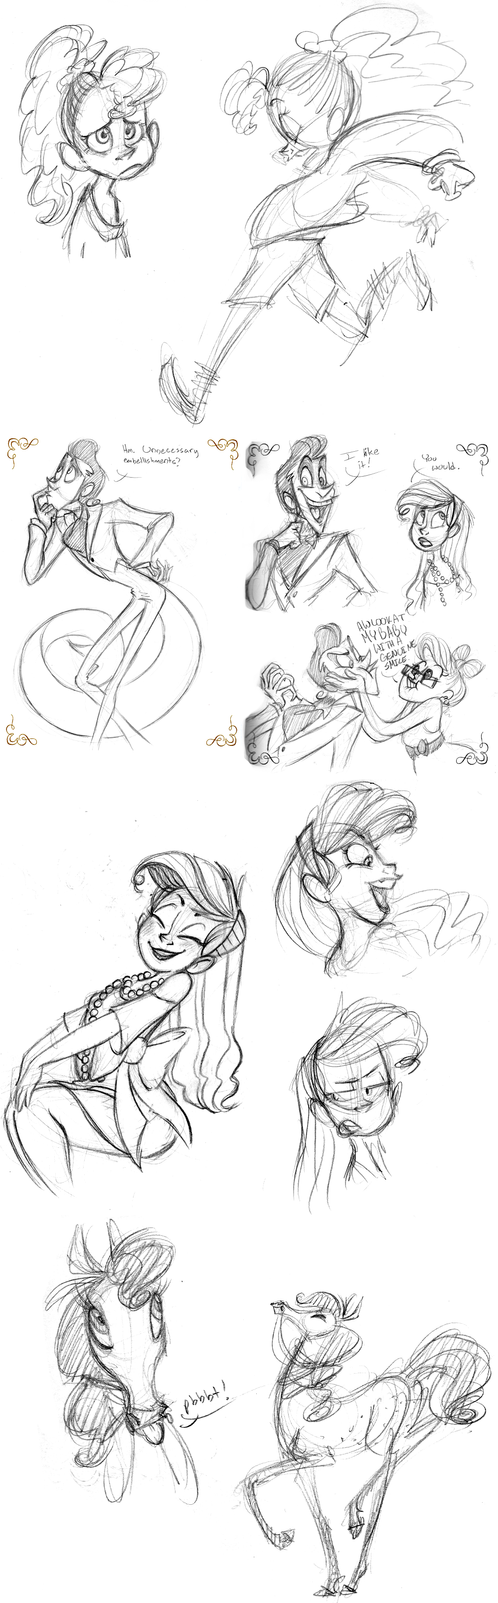 July 2014 Sketchdump by katseartist